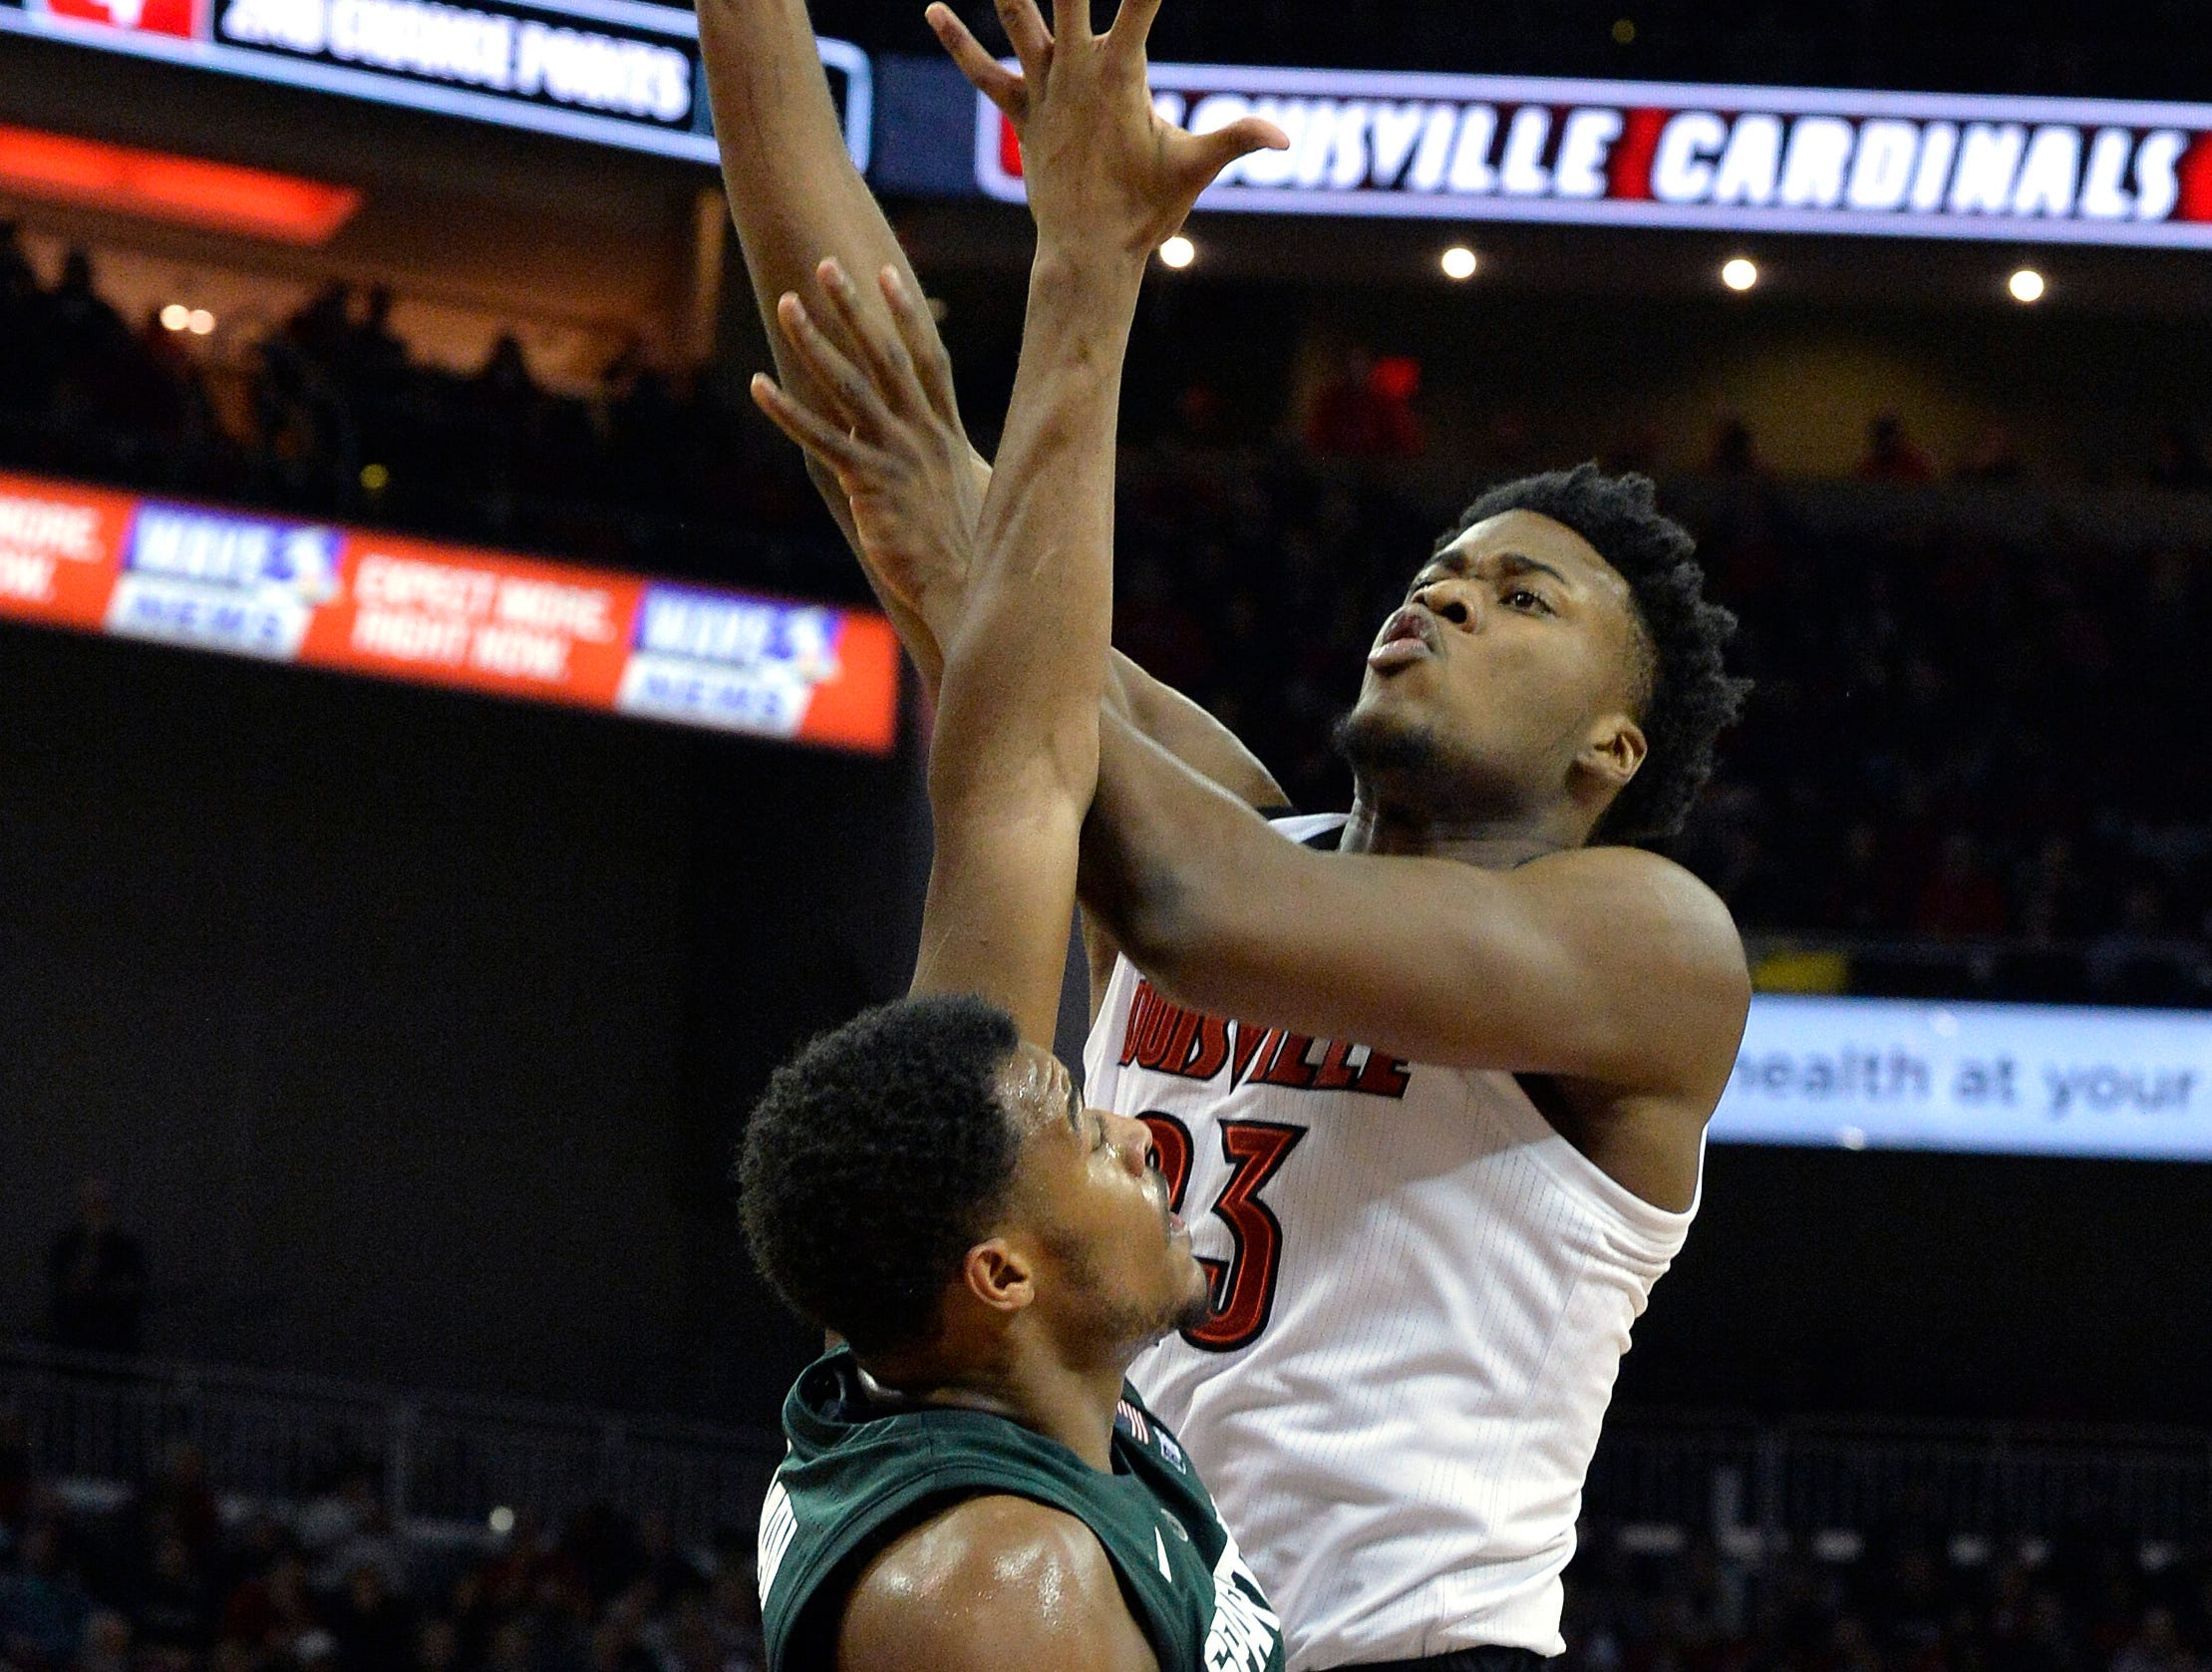 Louisville center Steven Enoch (23) shoots over the defense of Michigan State forward Xavier Tillman (23) during the second half.